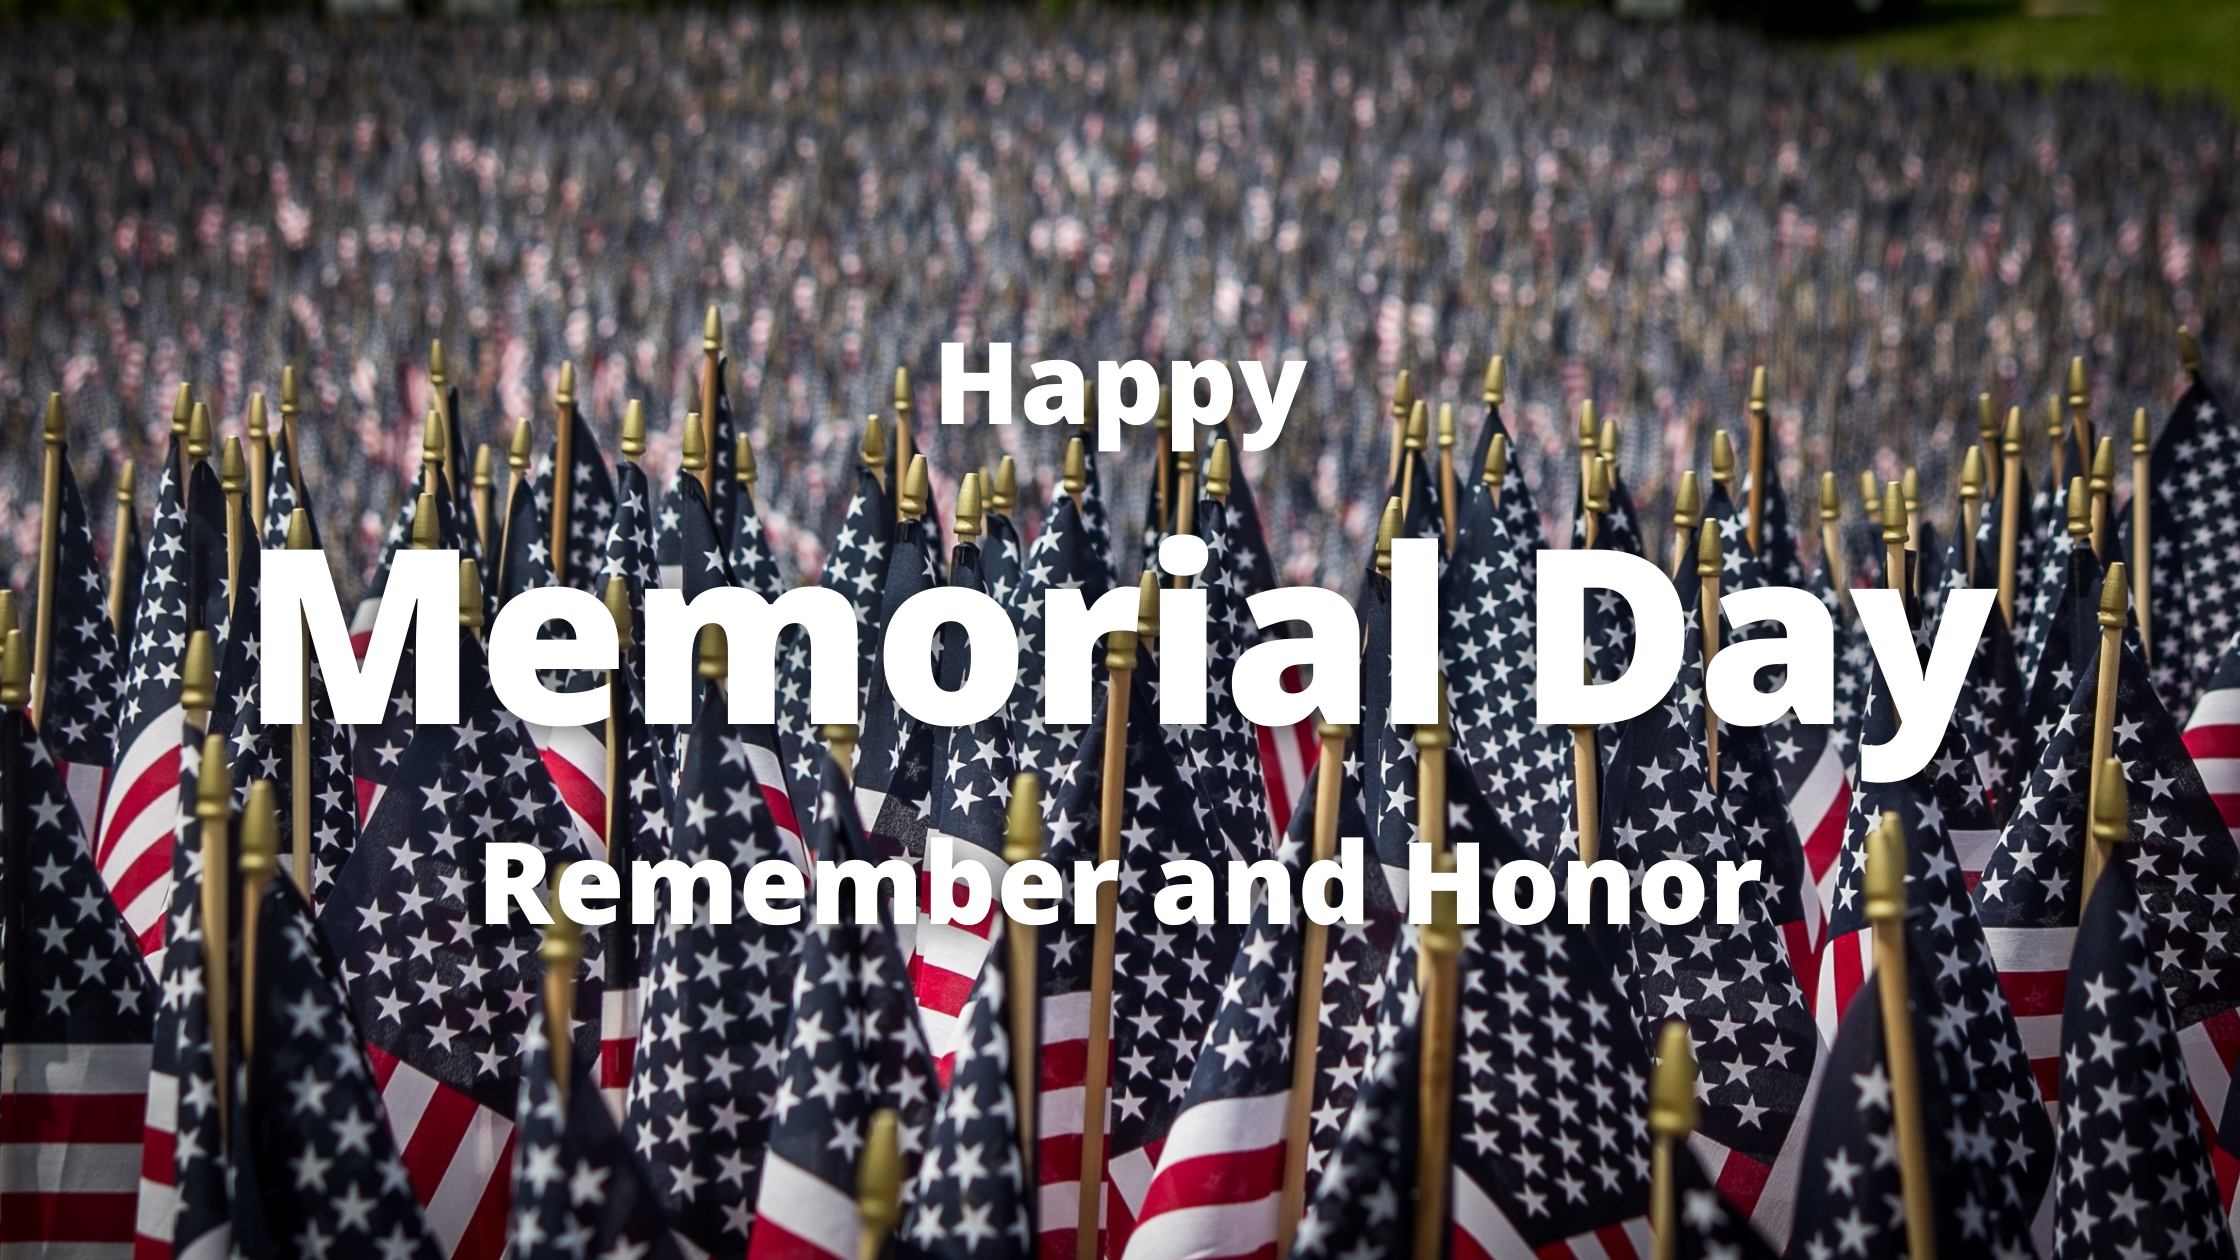 Happy Memorial Day from SEPCO